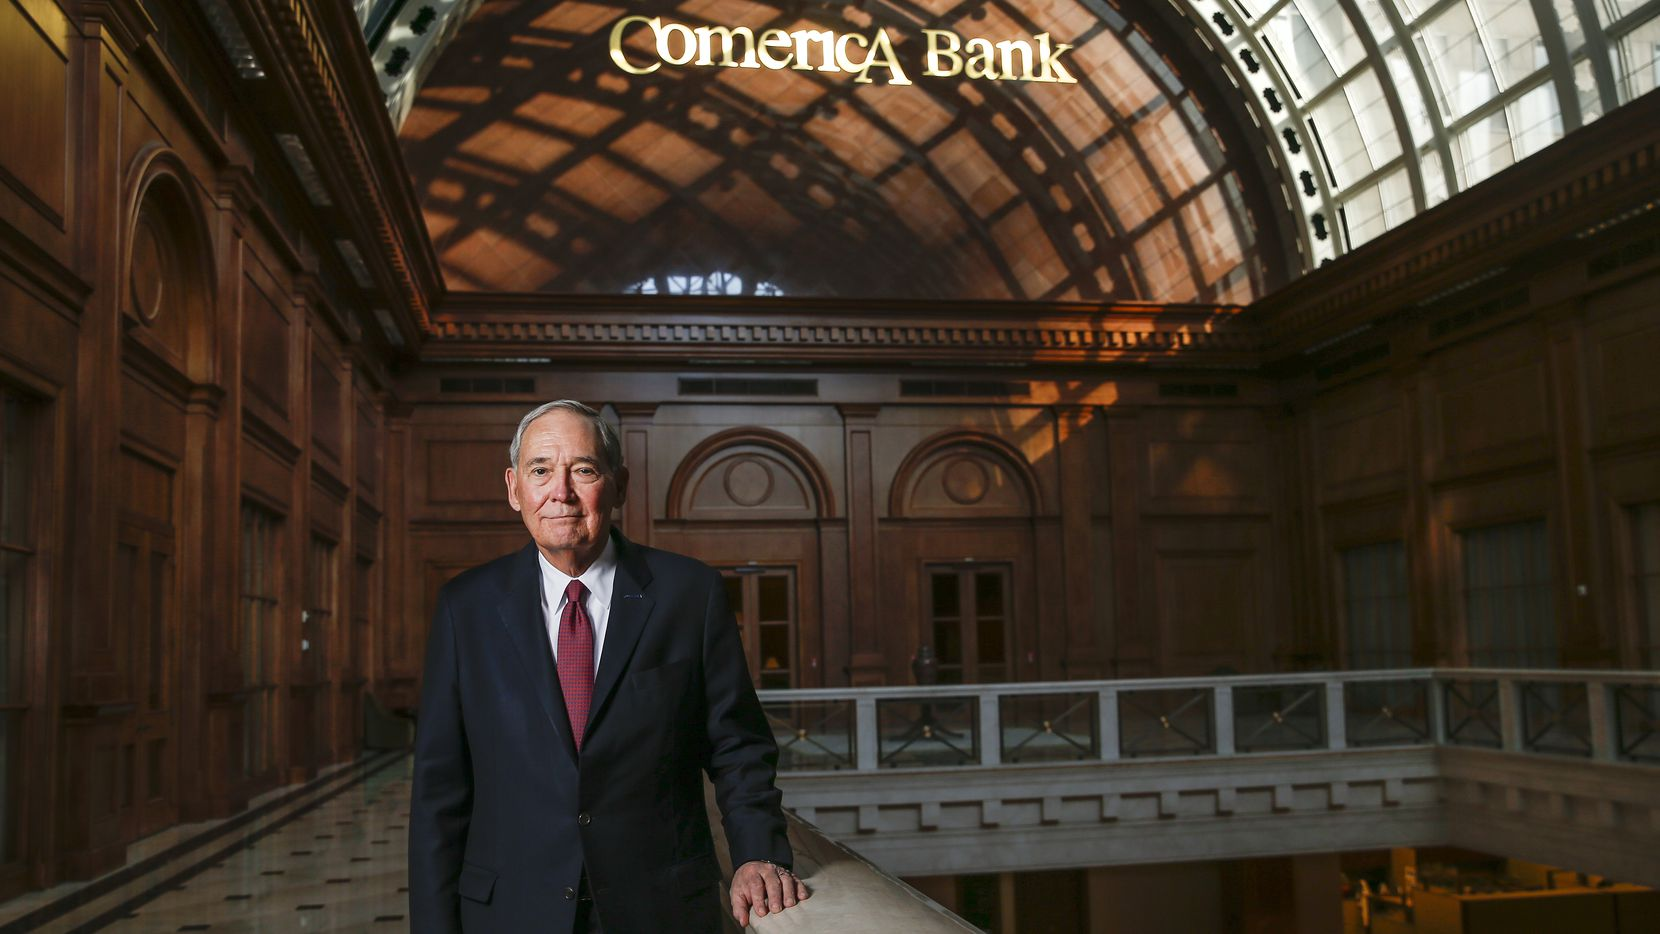 Ralph Babb, who is retiring from Comerica after serving as CEO and chairman, pushed the banking company to relocate its corporate headquarters to downtown Dallas in 2007.